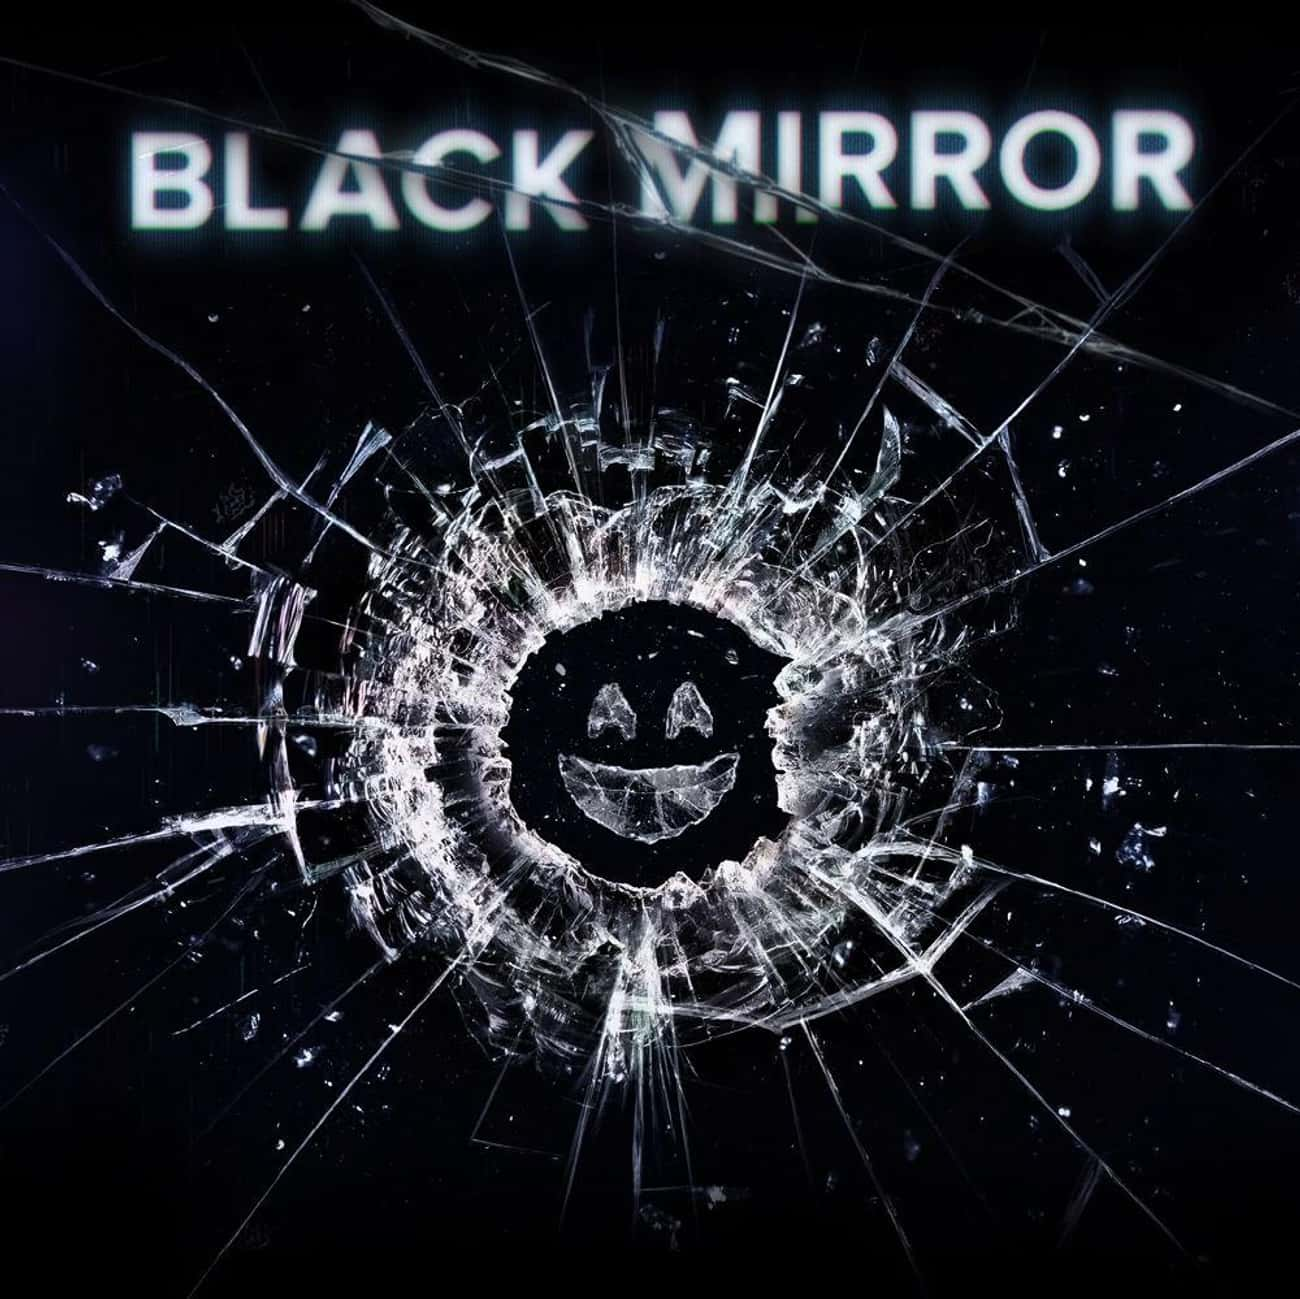 Black Mirror is listed (or ranked) 4 on the list The Best Shows & Movies Set in the Future